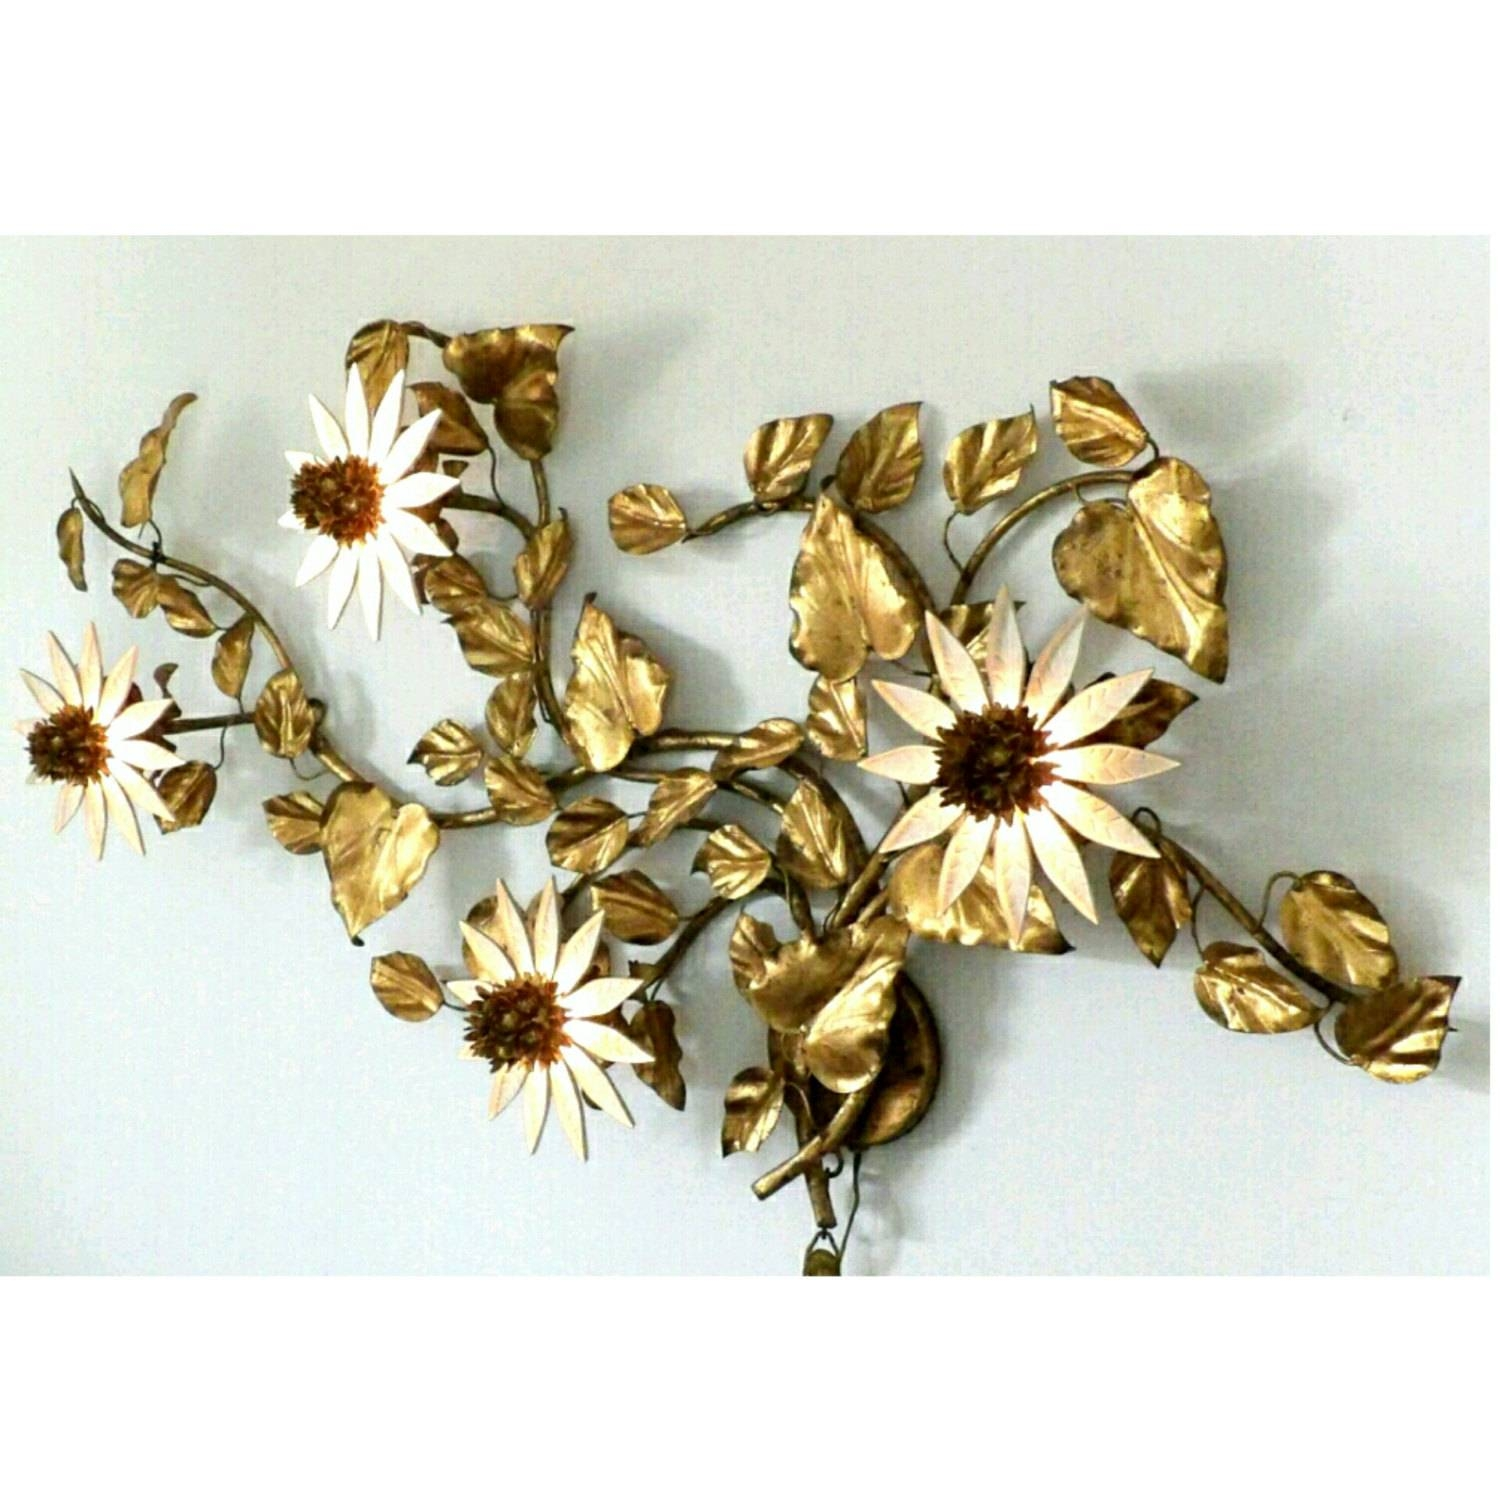 Brevettato Italian Lighted Metal Wall Art Sconce Floral Pertaining To Newest Italian Metal Wall Art (View 21 of 25)